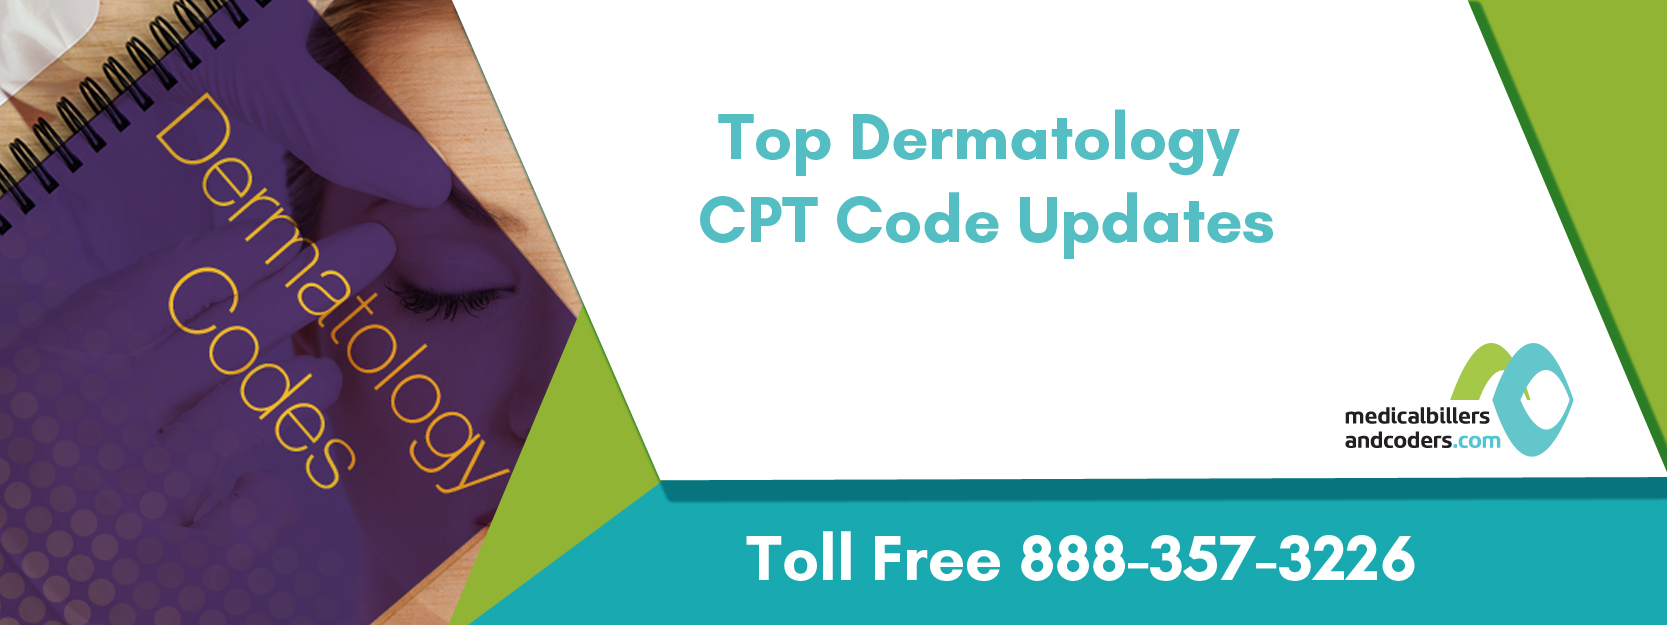 blog-top-dermatology-cpt-code-updates